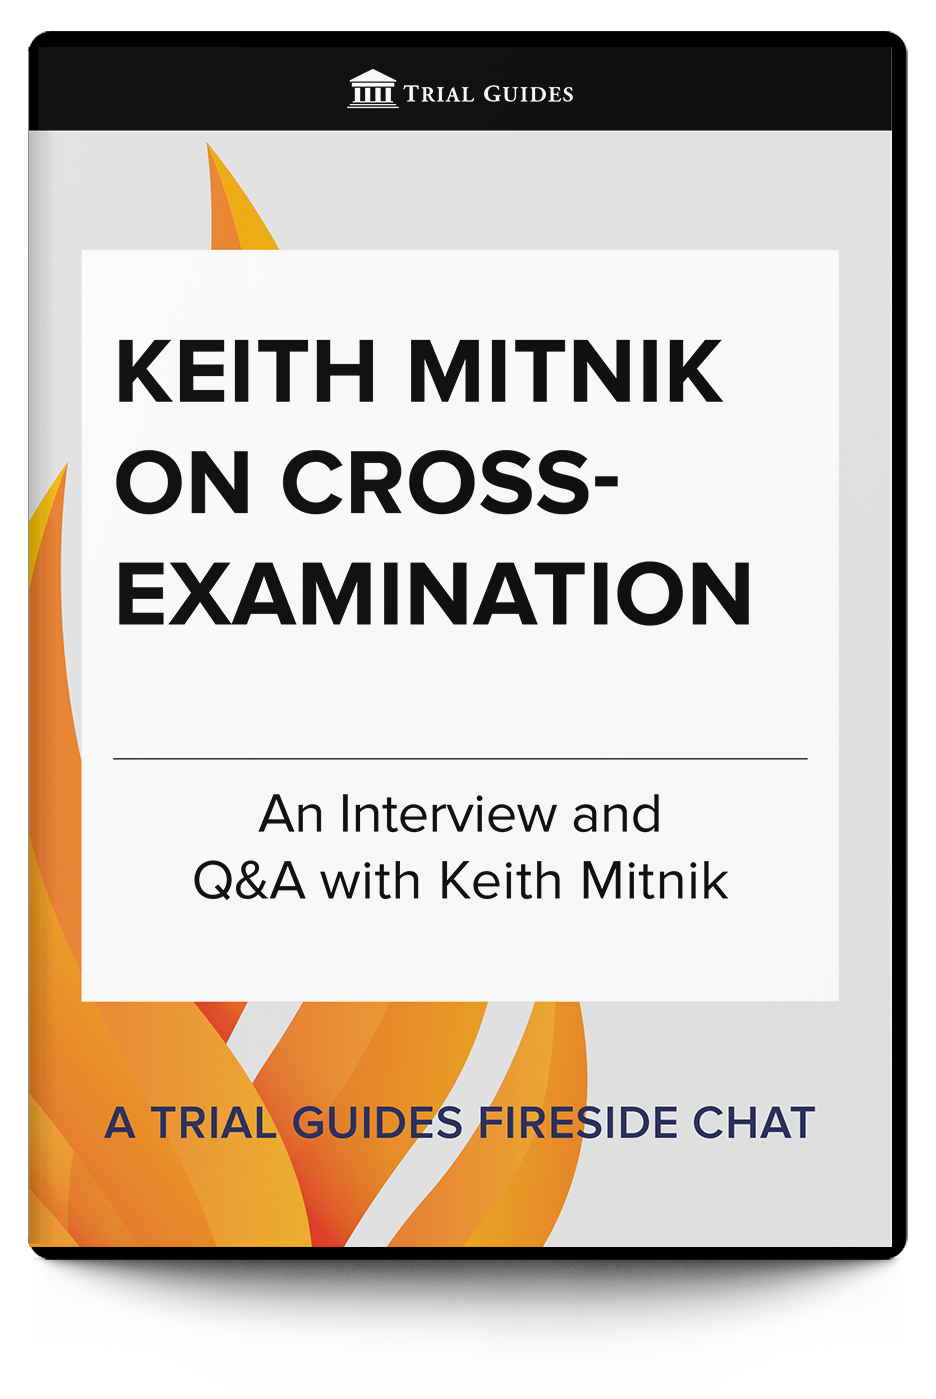 Keith Mitnik on Cross-Examination